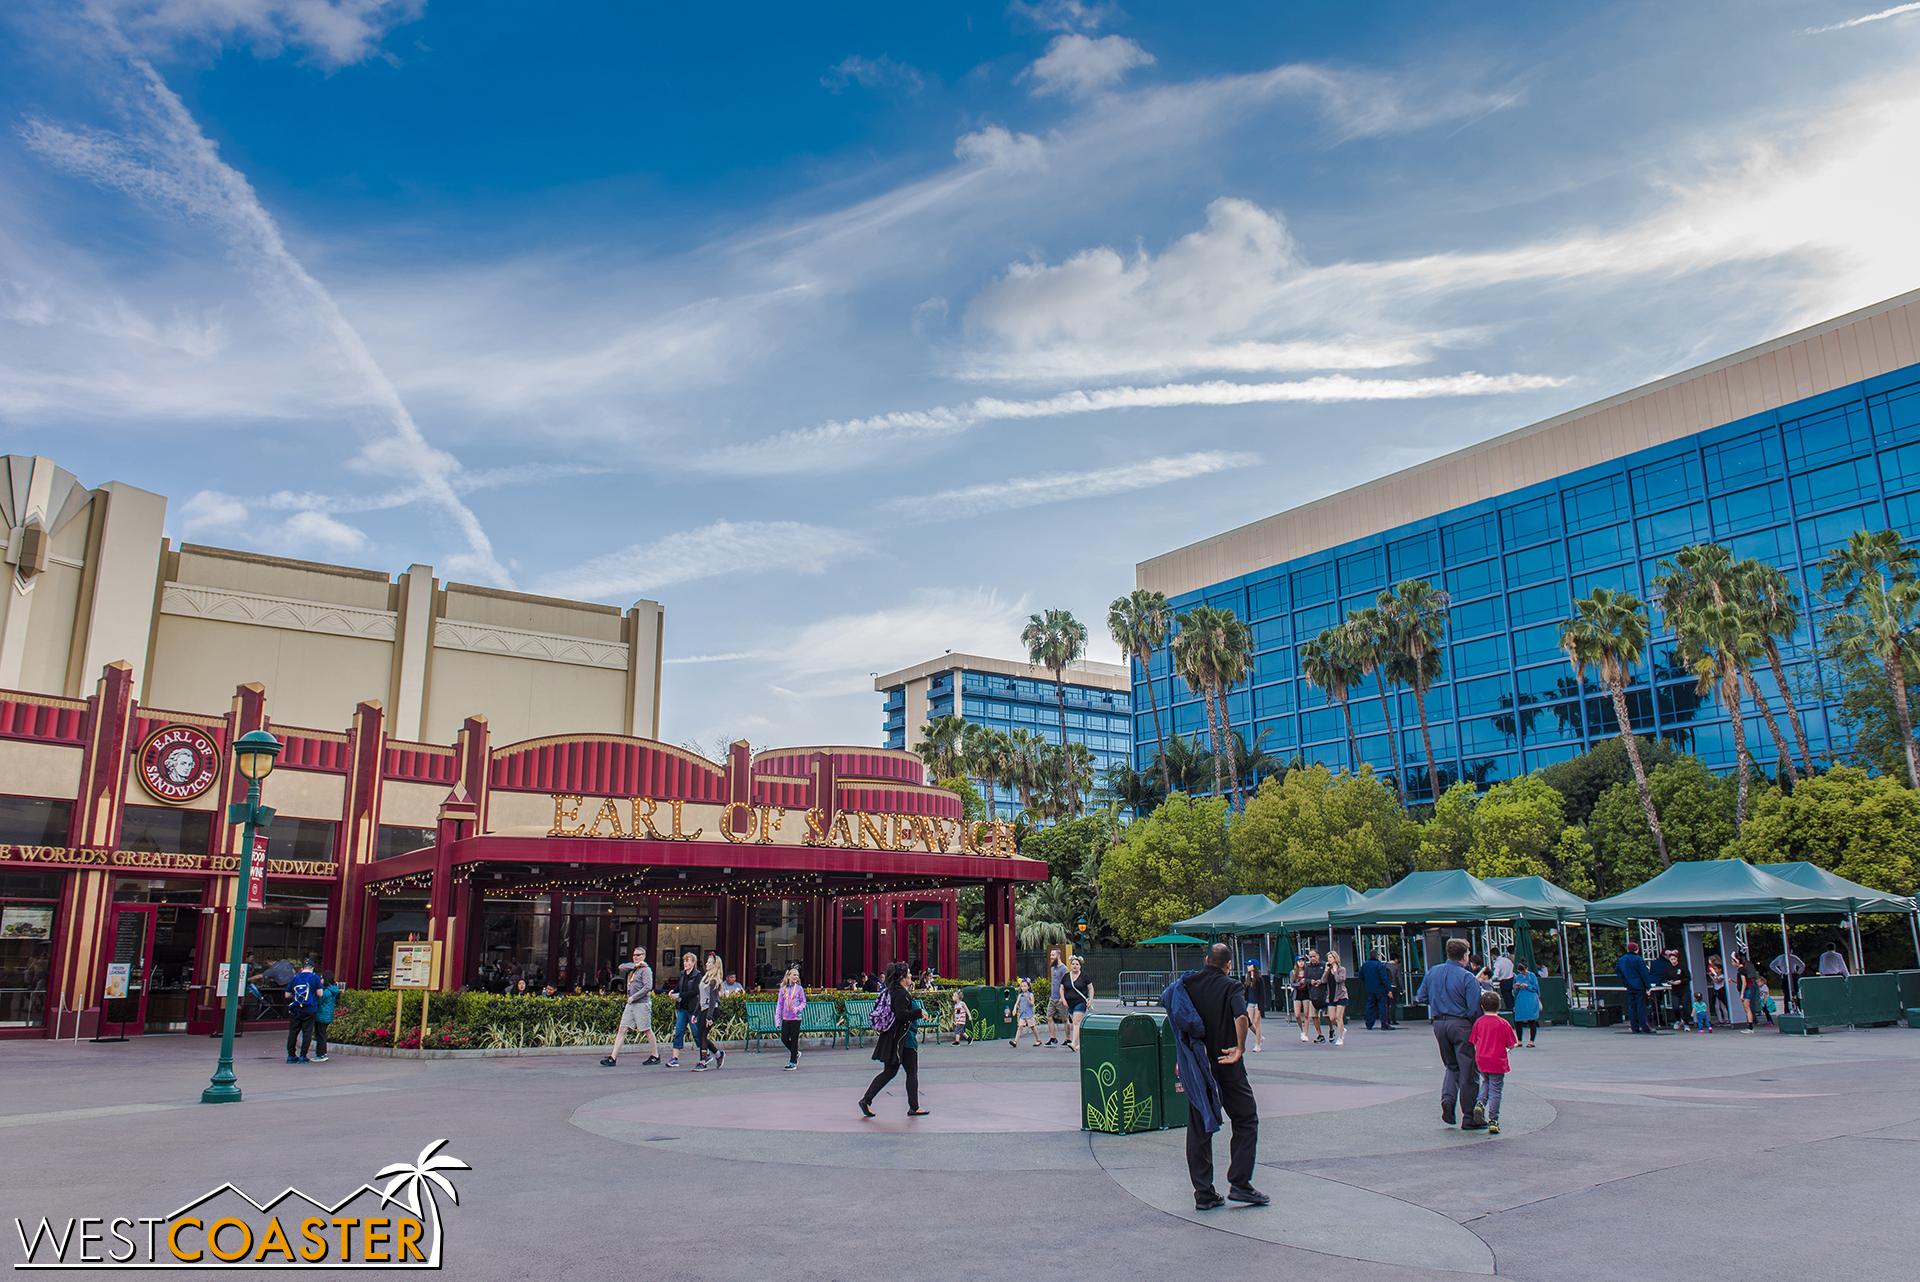 The biggest blow is that Earl of Sandwich is also leaving. But hopefully, it gets incorporated back into retail that will go into the ground floor of the new hotel.